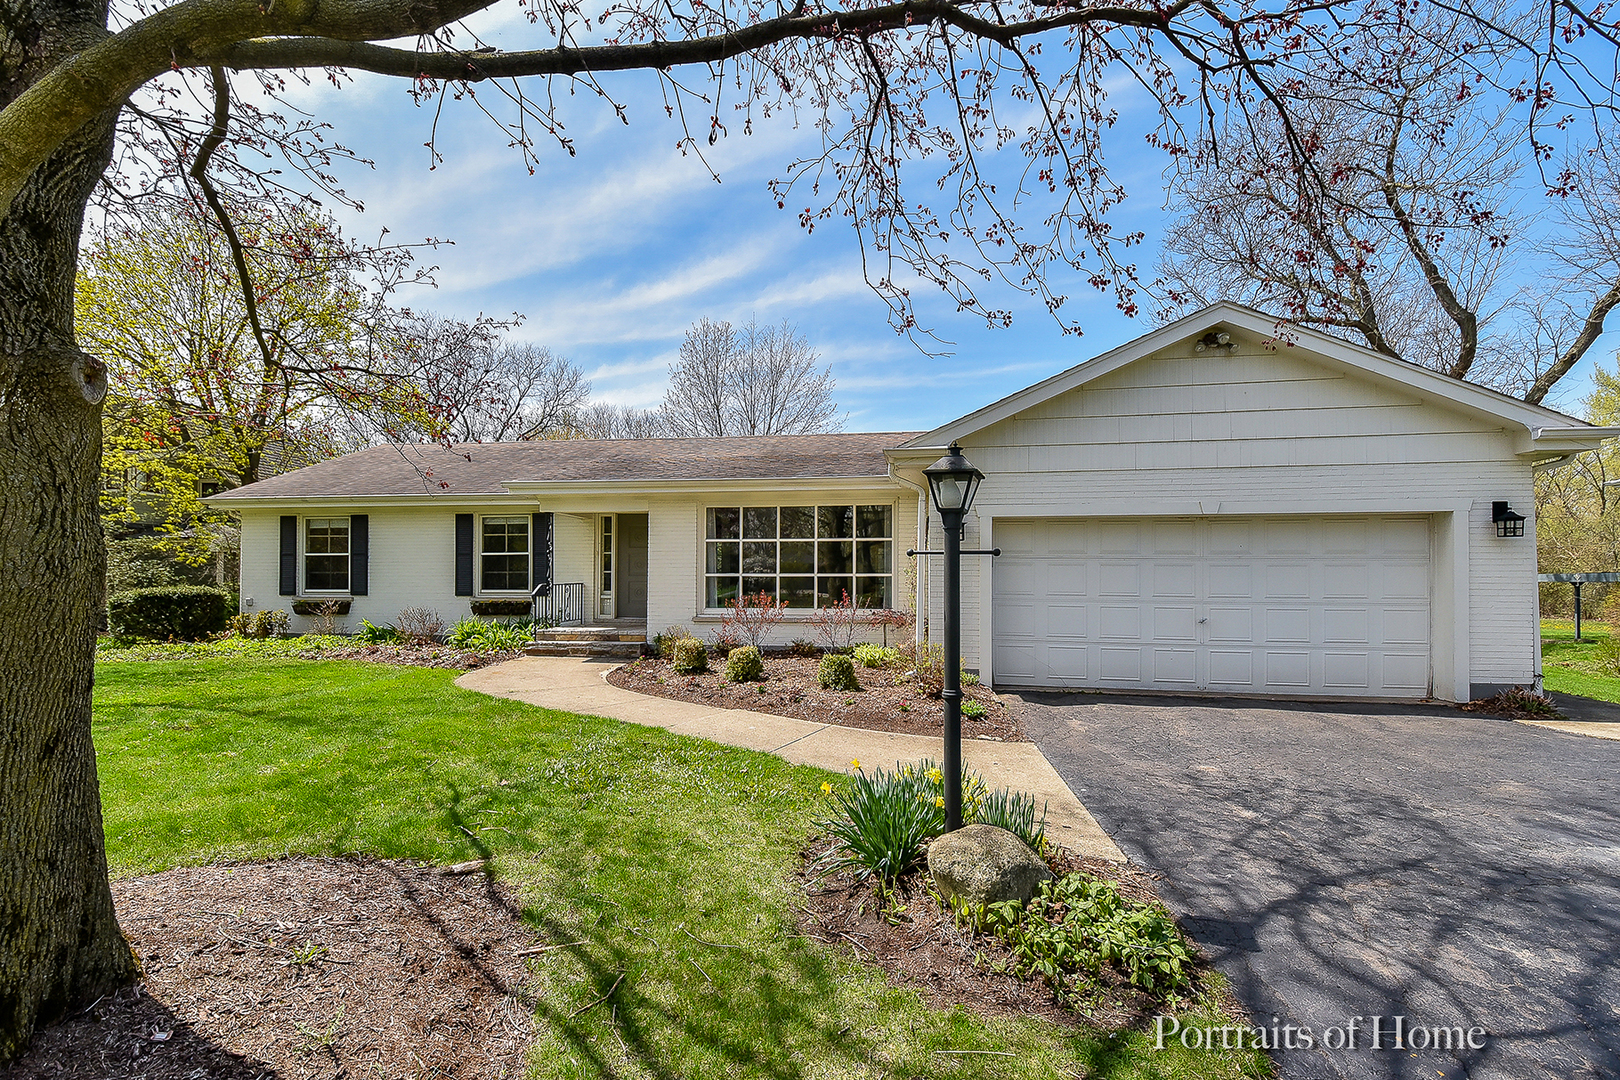 Property for sale at 0N518 Willow Road, WHEATON,  Il 60187